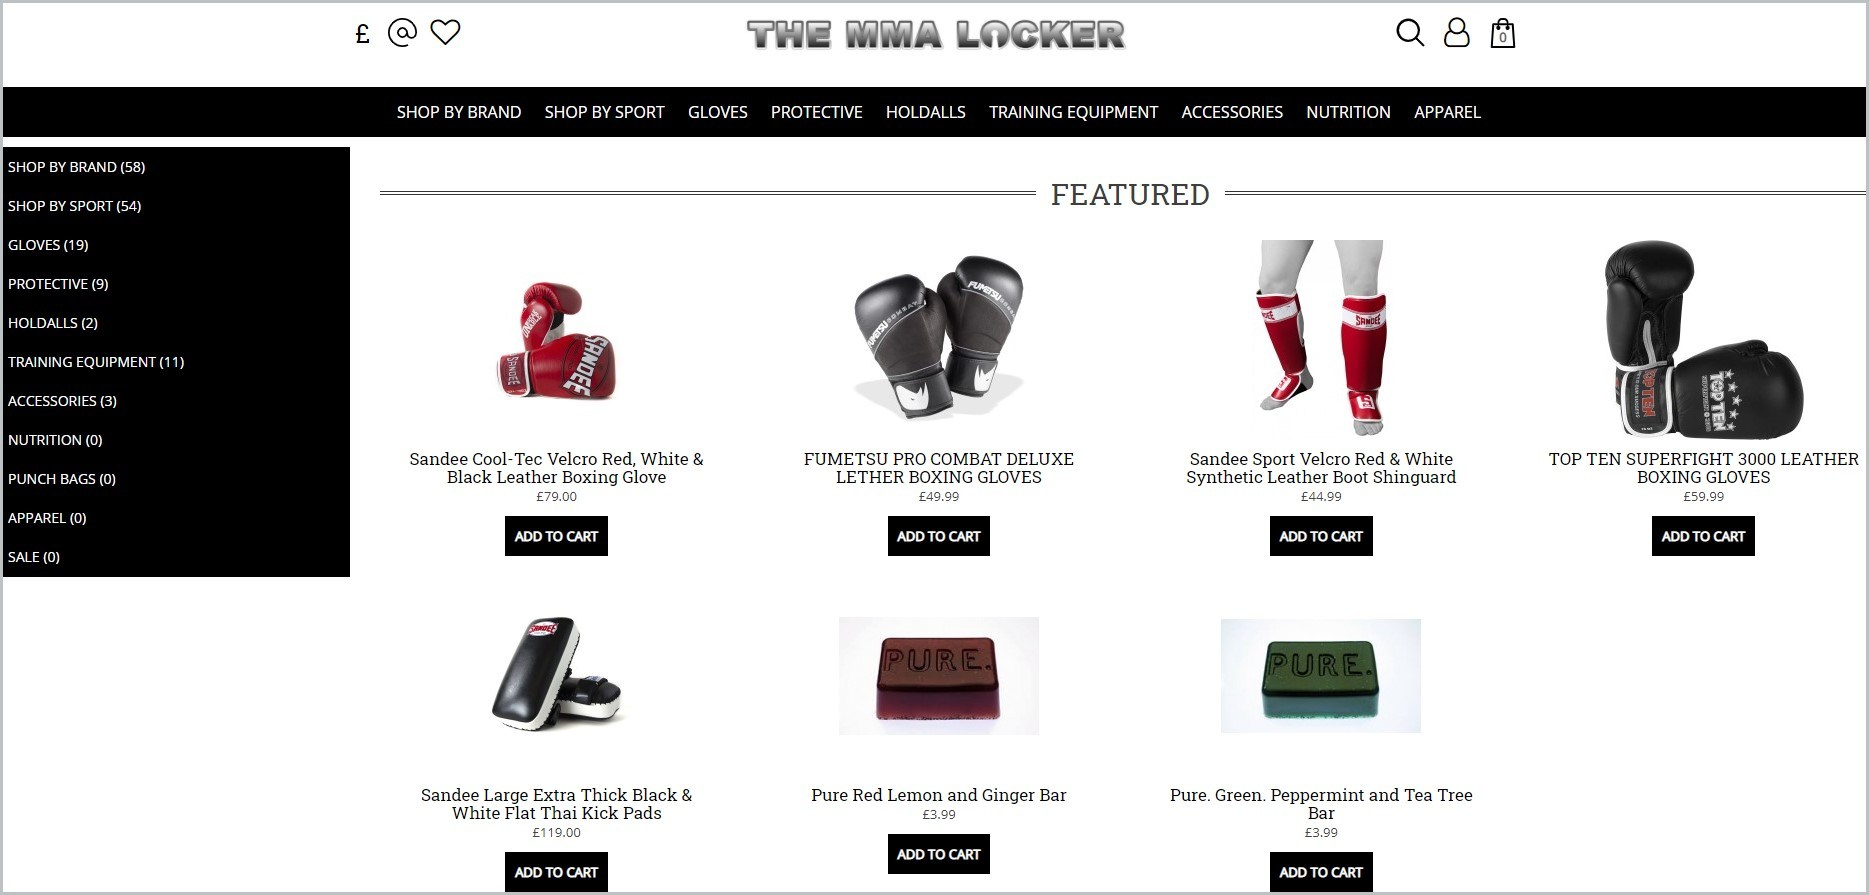 screenshot of The MMA Locker homepage with showcasing the images of the products they offer